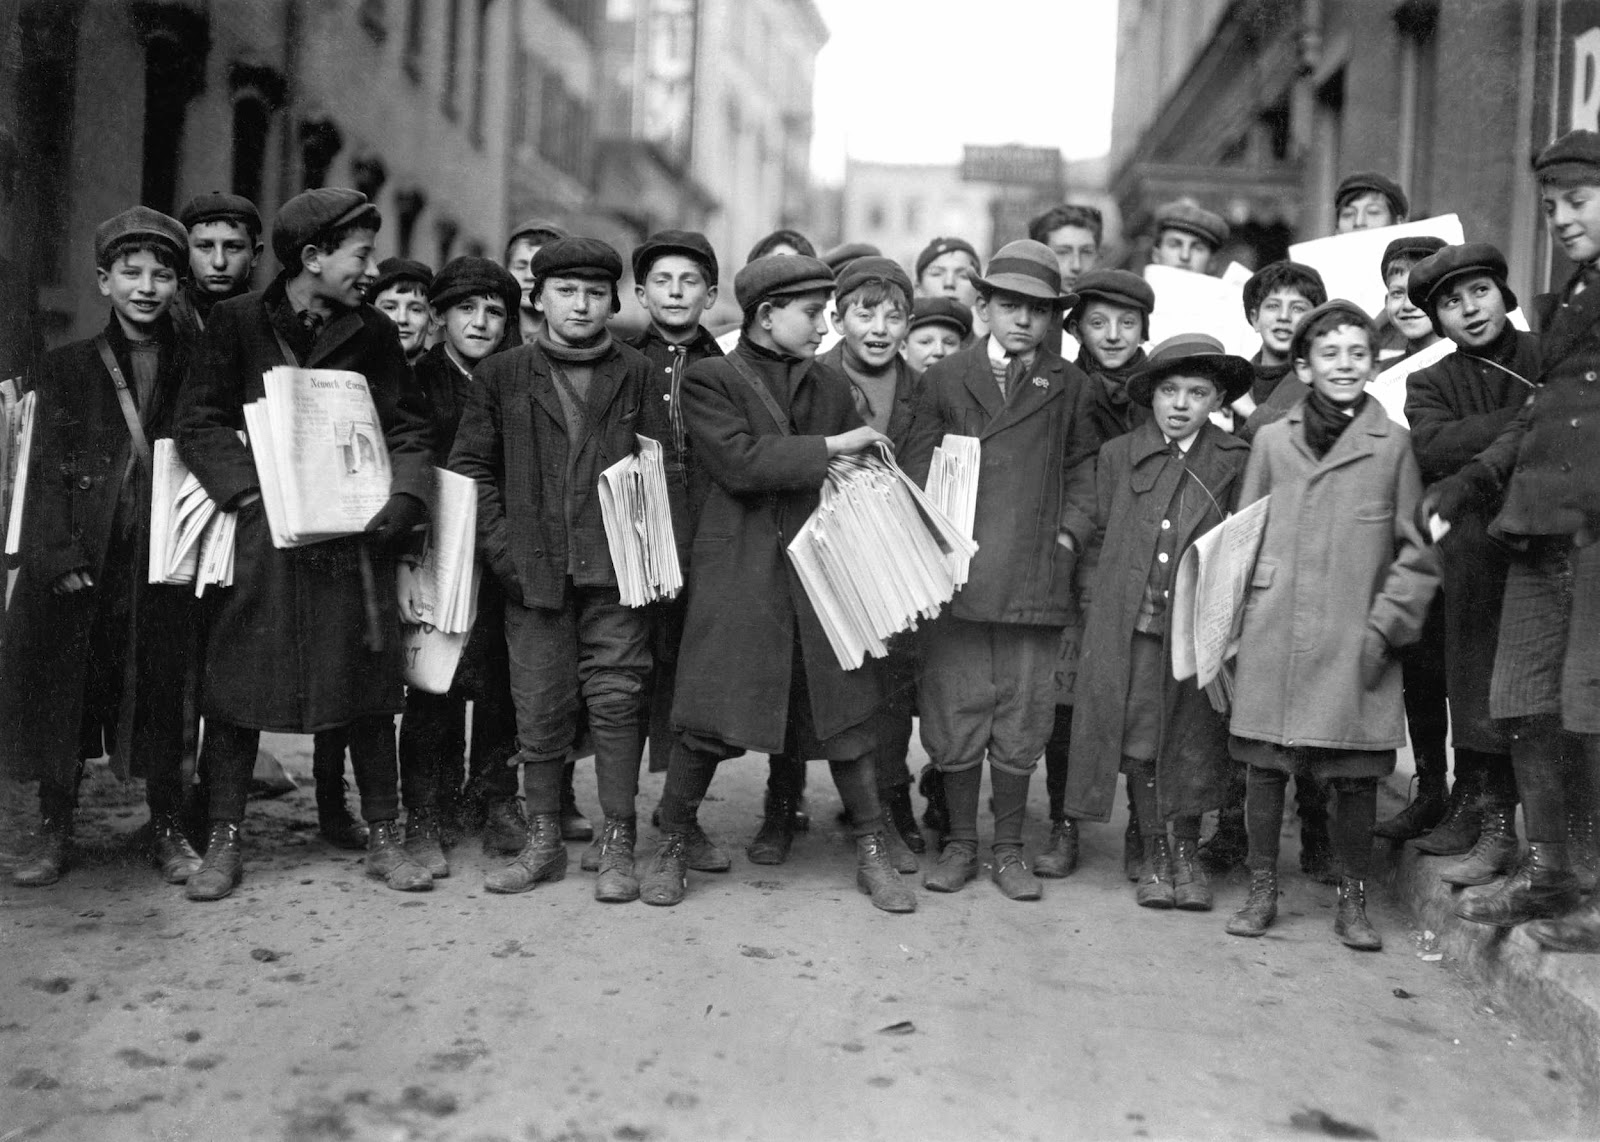 Young newsboys photographed by Lewis Hine in Newark, New Jersey, 1909.